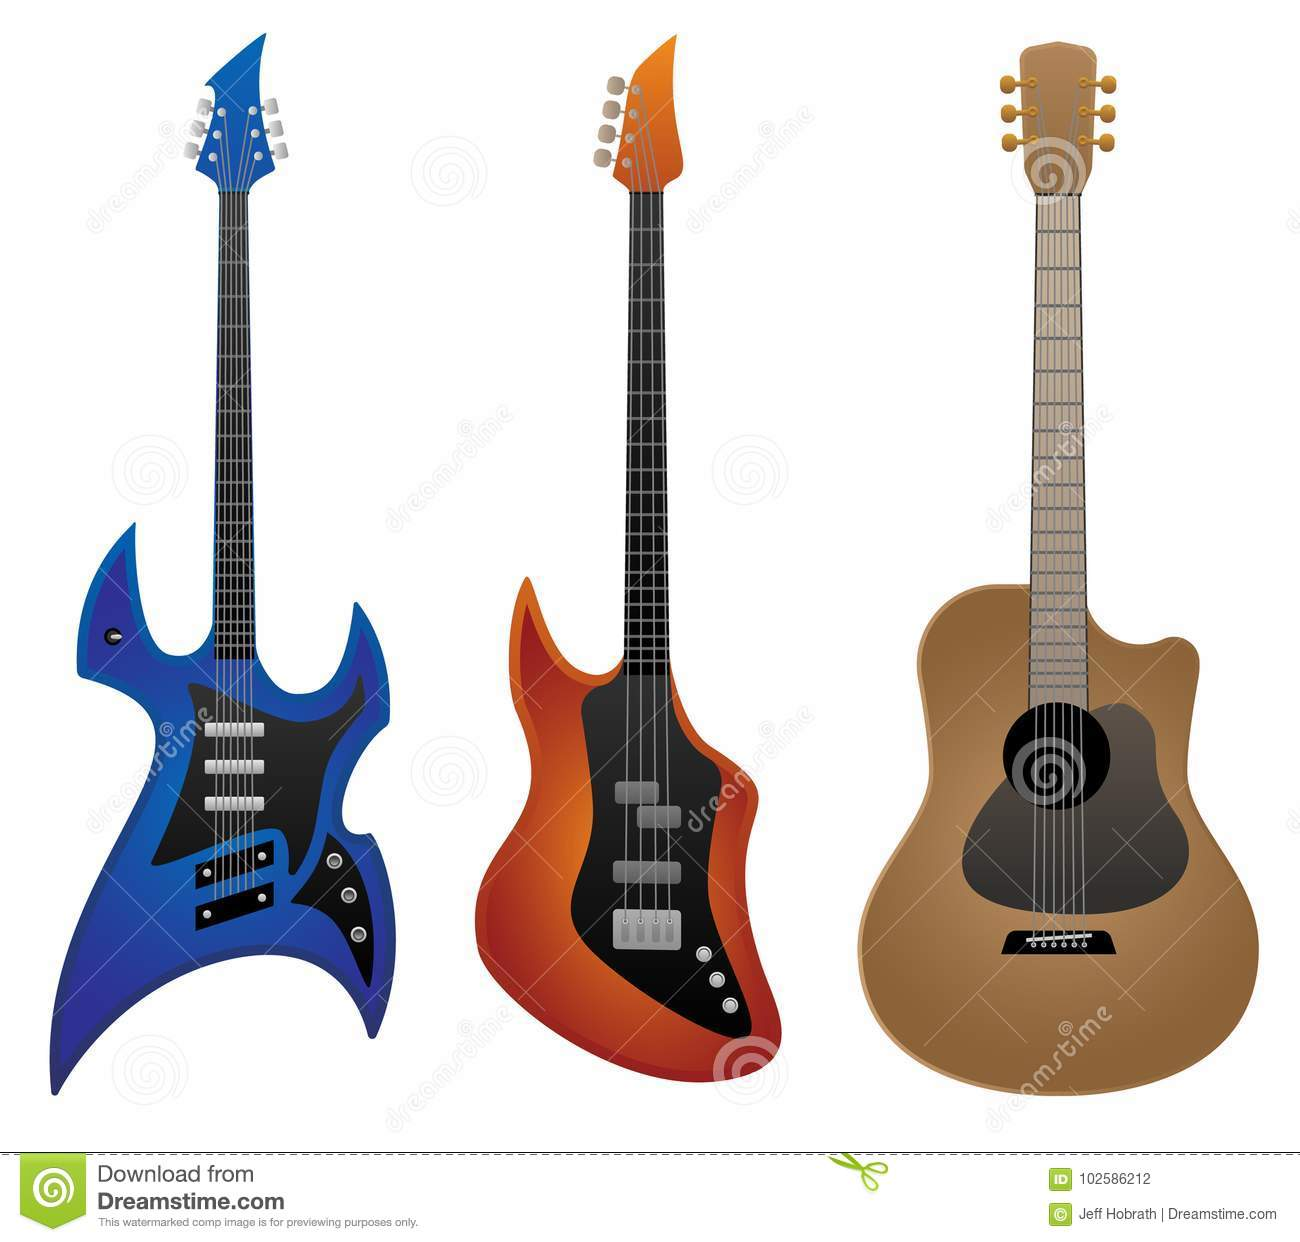 electric rock guitar bass guitar and acoustic guitar vector rh dreamstime com acoustic guitar vector art acoustic guitar vector free download